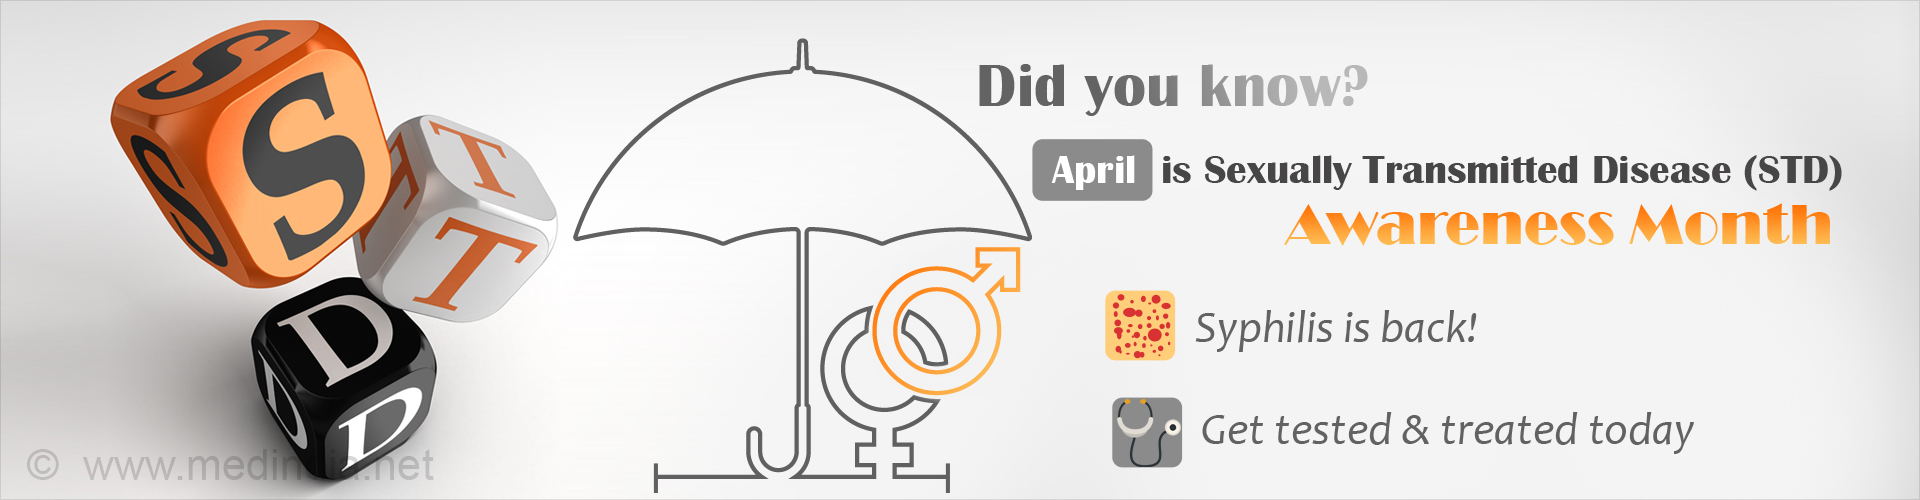 Did you know? April is sexually transmitted disease (std) awareness month - Syphilis is back - Get tested and treated today